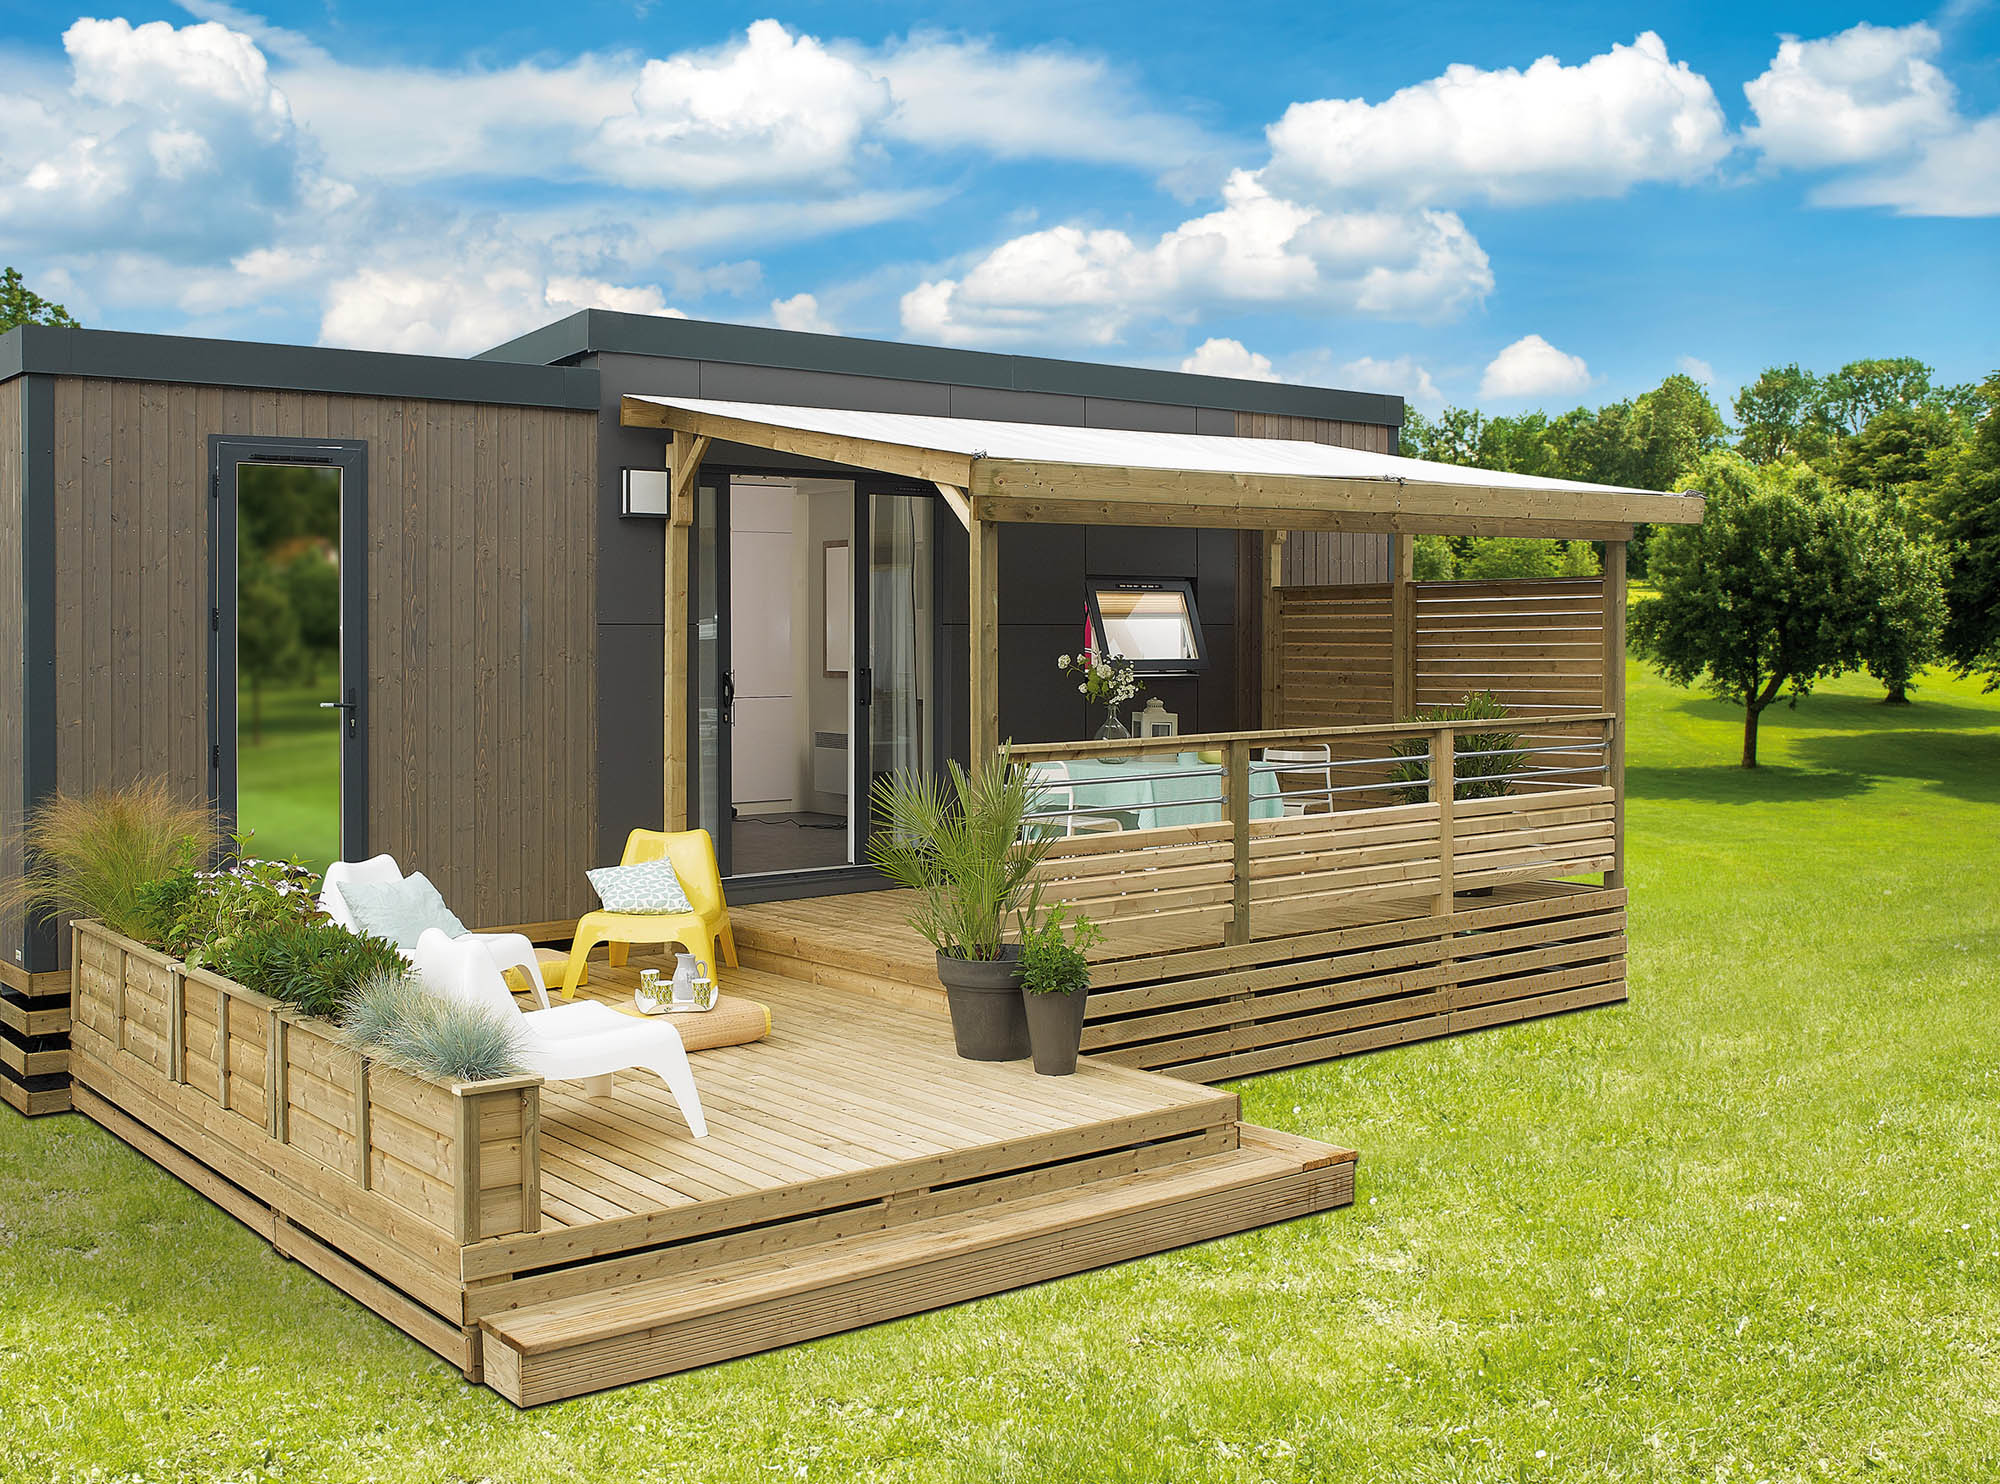 terrasse en bois pour mobil home clairval conseils. Black Bedroom Furniture Sets. Home Design Ideas